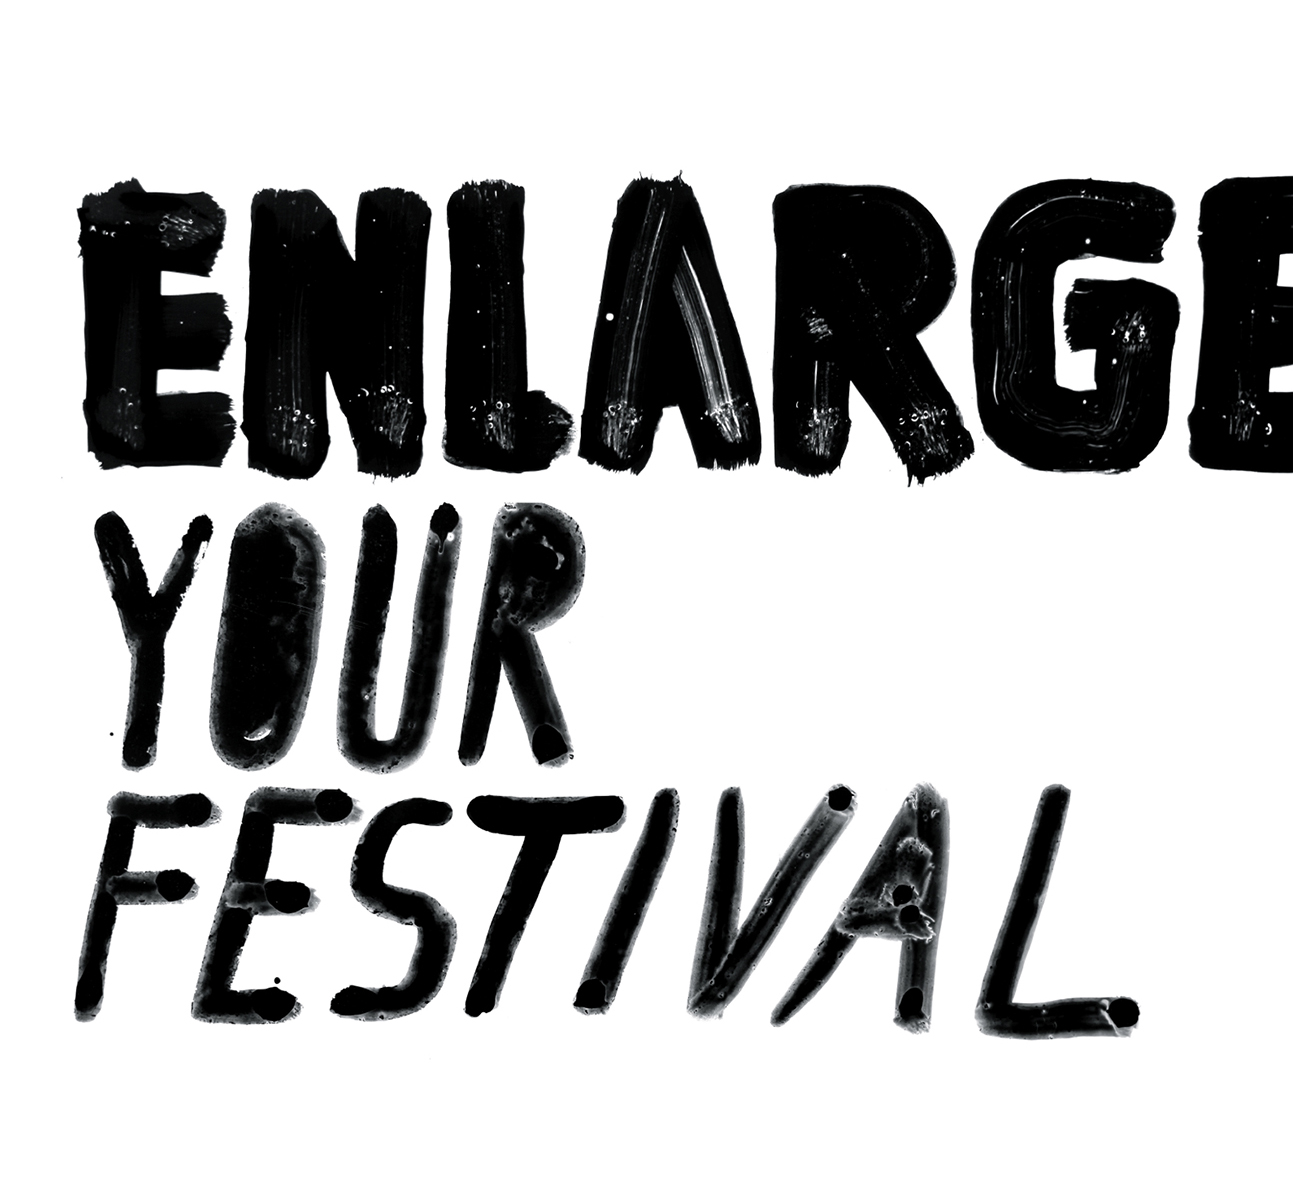 enlargeyourfestival